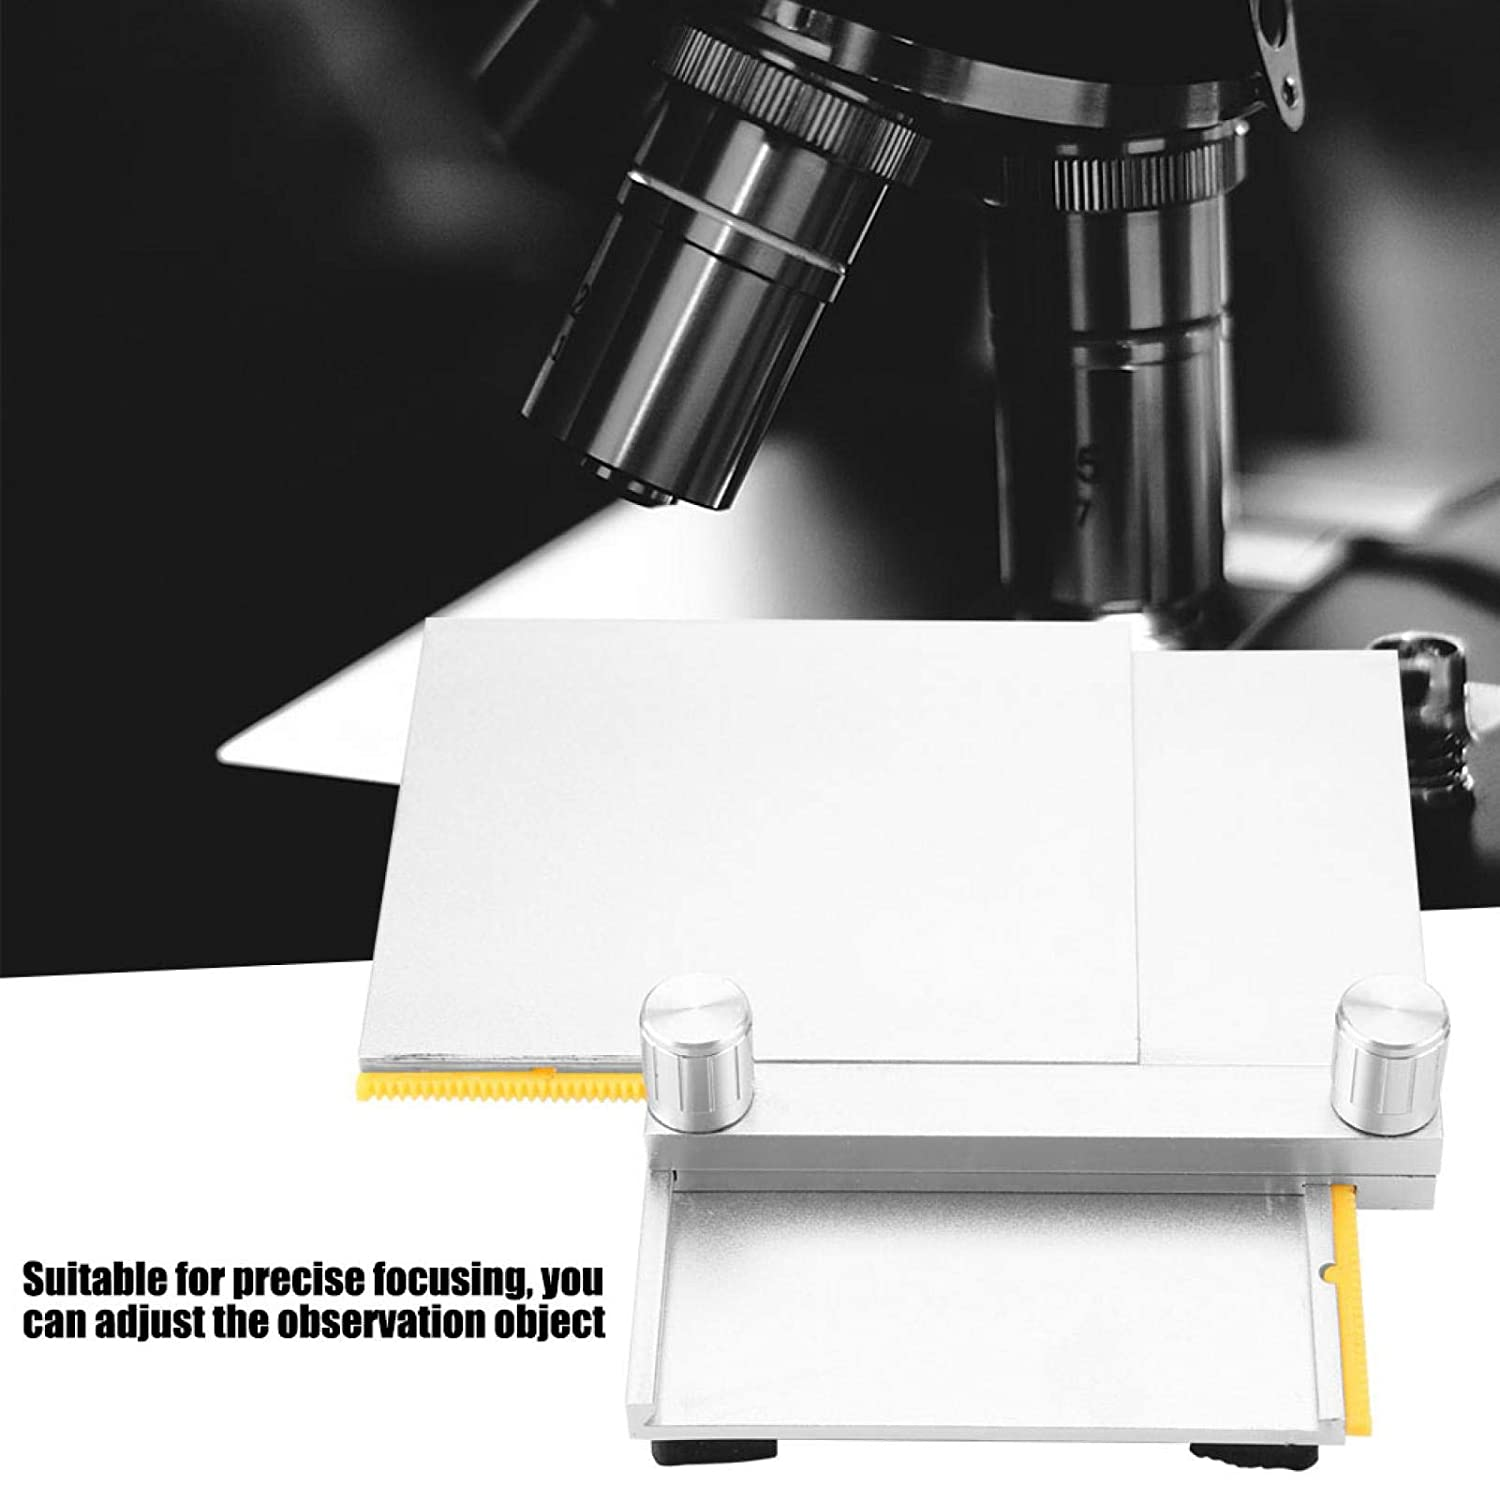 Universal for Electronic Eicroscope Portable Microscope Durable Aluminum Alloy Digital Microscope Stand Z006 Microscope Stand